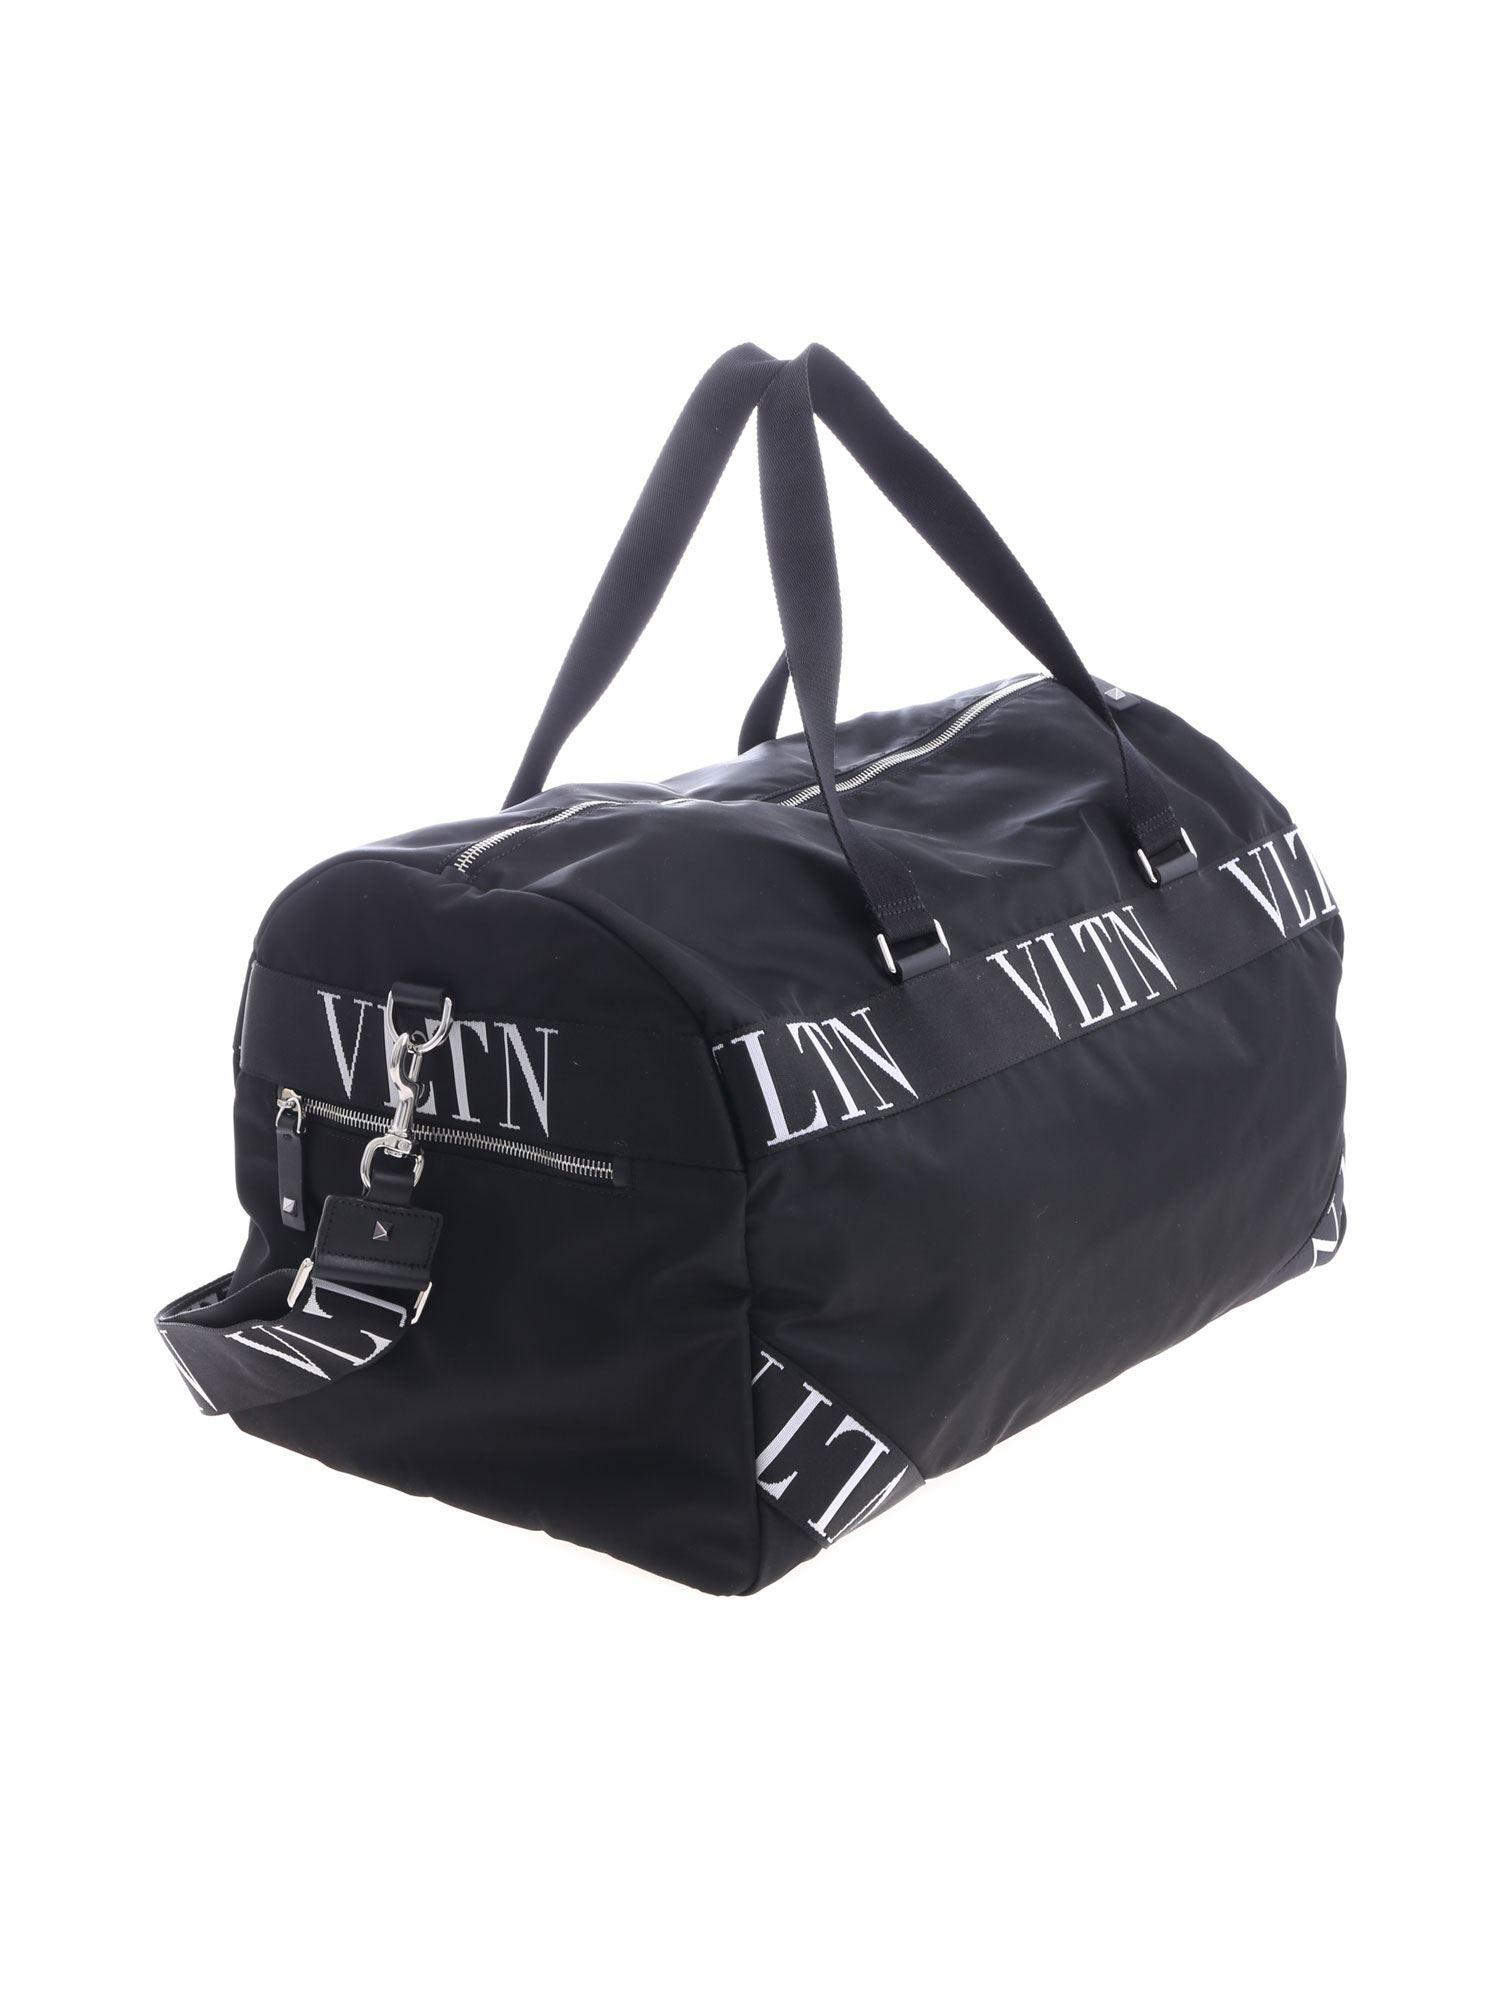 6b9be97ee390 Valentino - Duffle Bag In Black With Branded Inserts for Men - Lyst. View  fullscreen